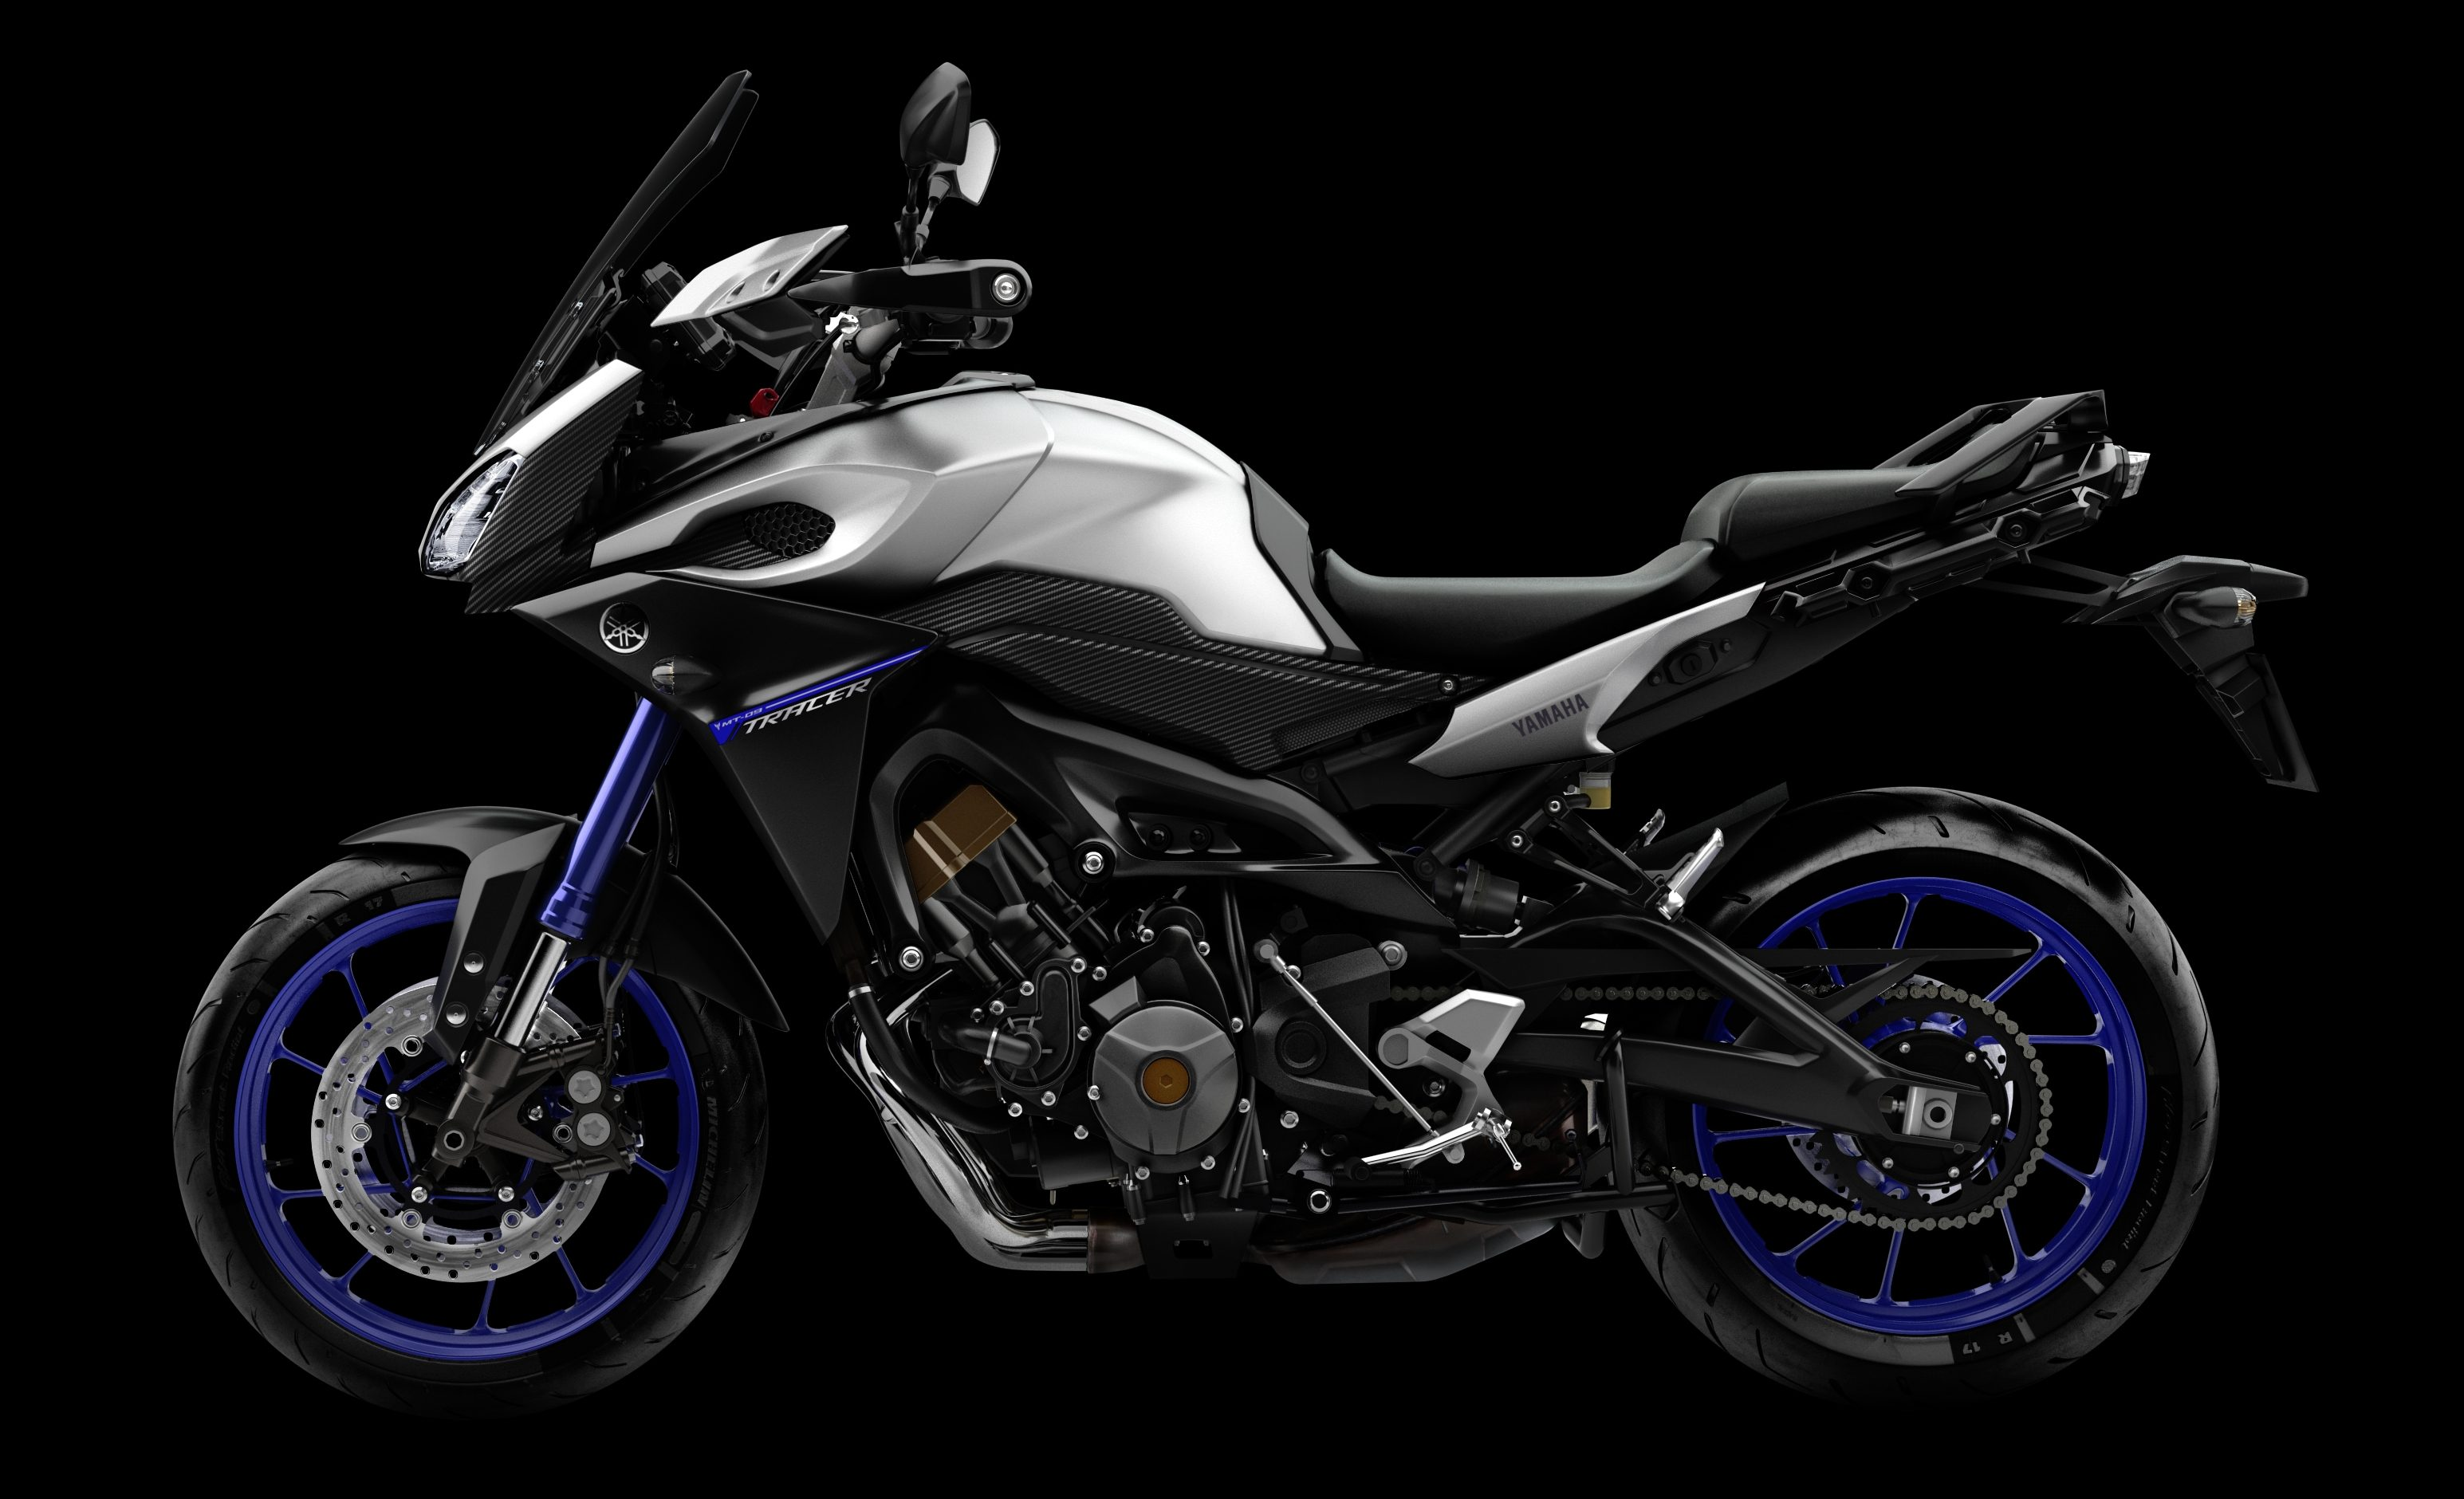 2016 yamaha mt 09 tracer in malaysia rm59 900 image 514861. Black Bedroom Furniture Sets. Home Design Ideas